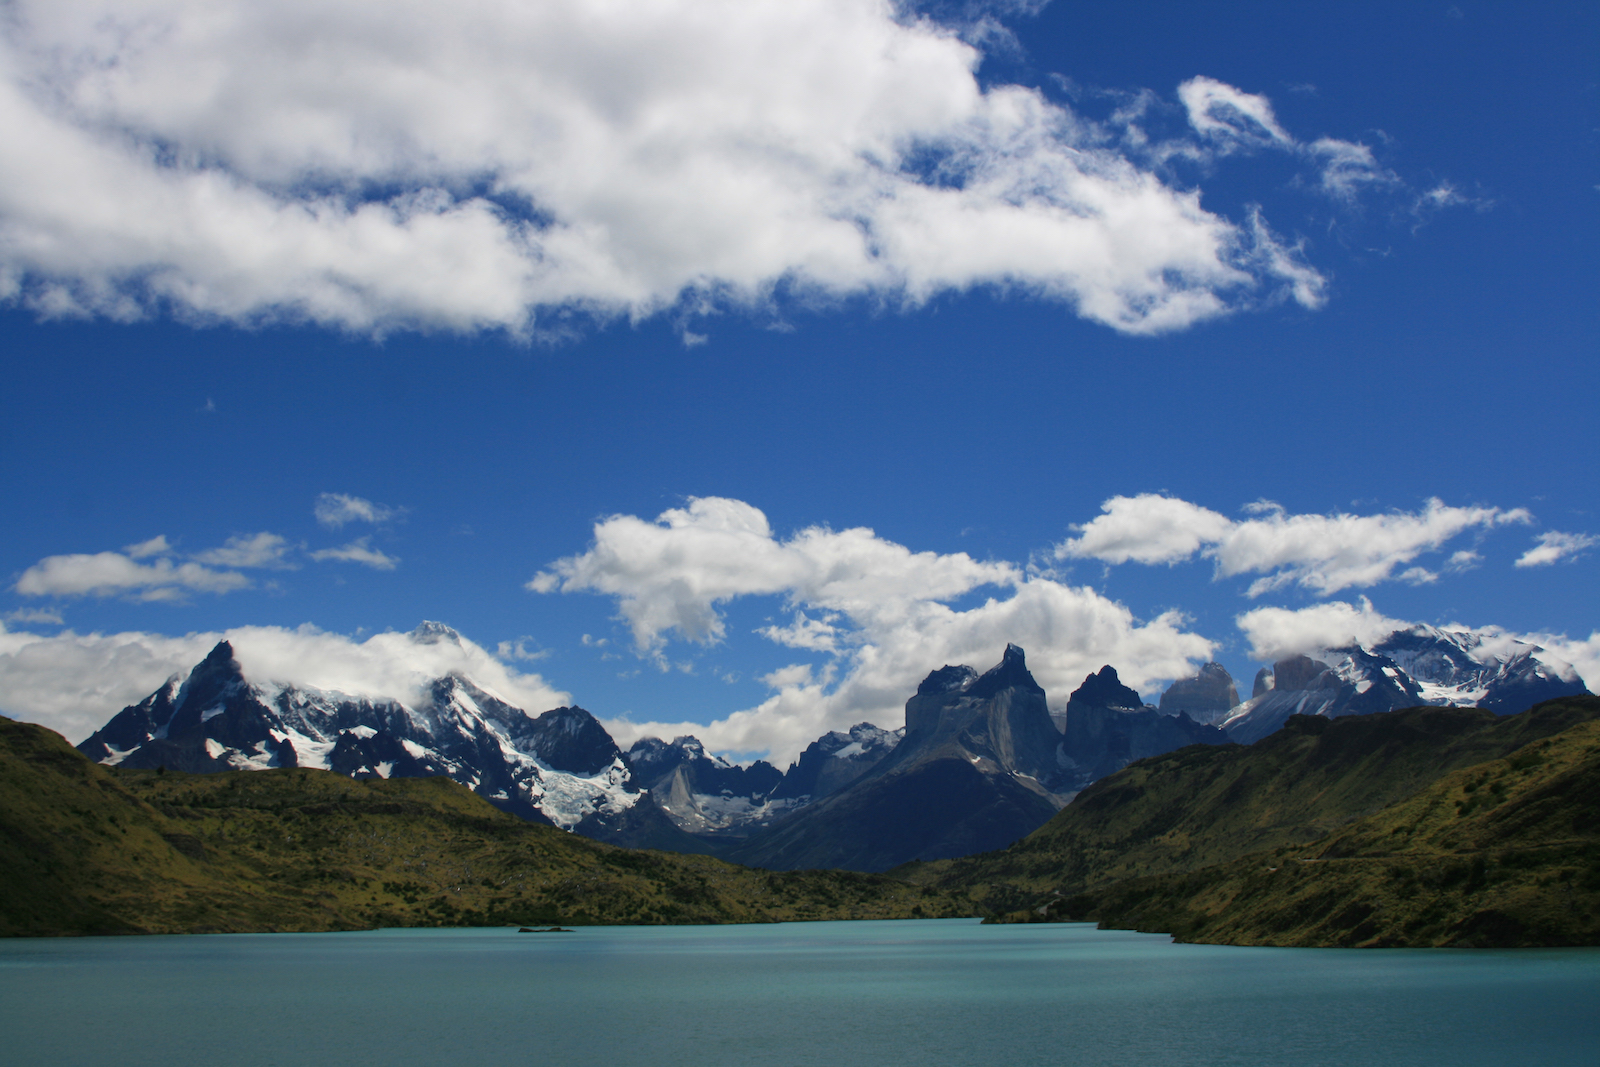 Torres del Paine National Park. Photo: Evelyn Pfeiffer